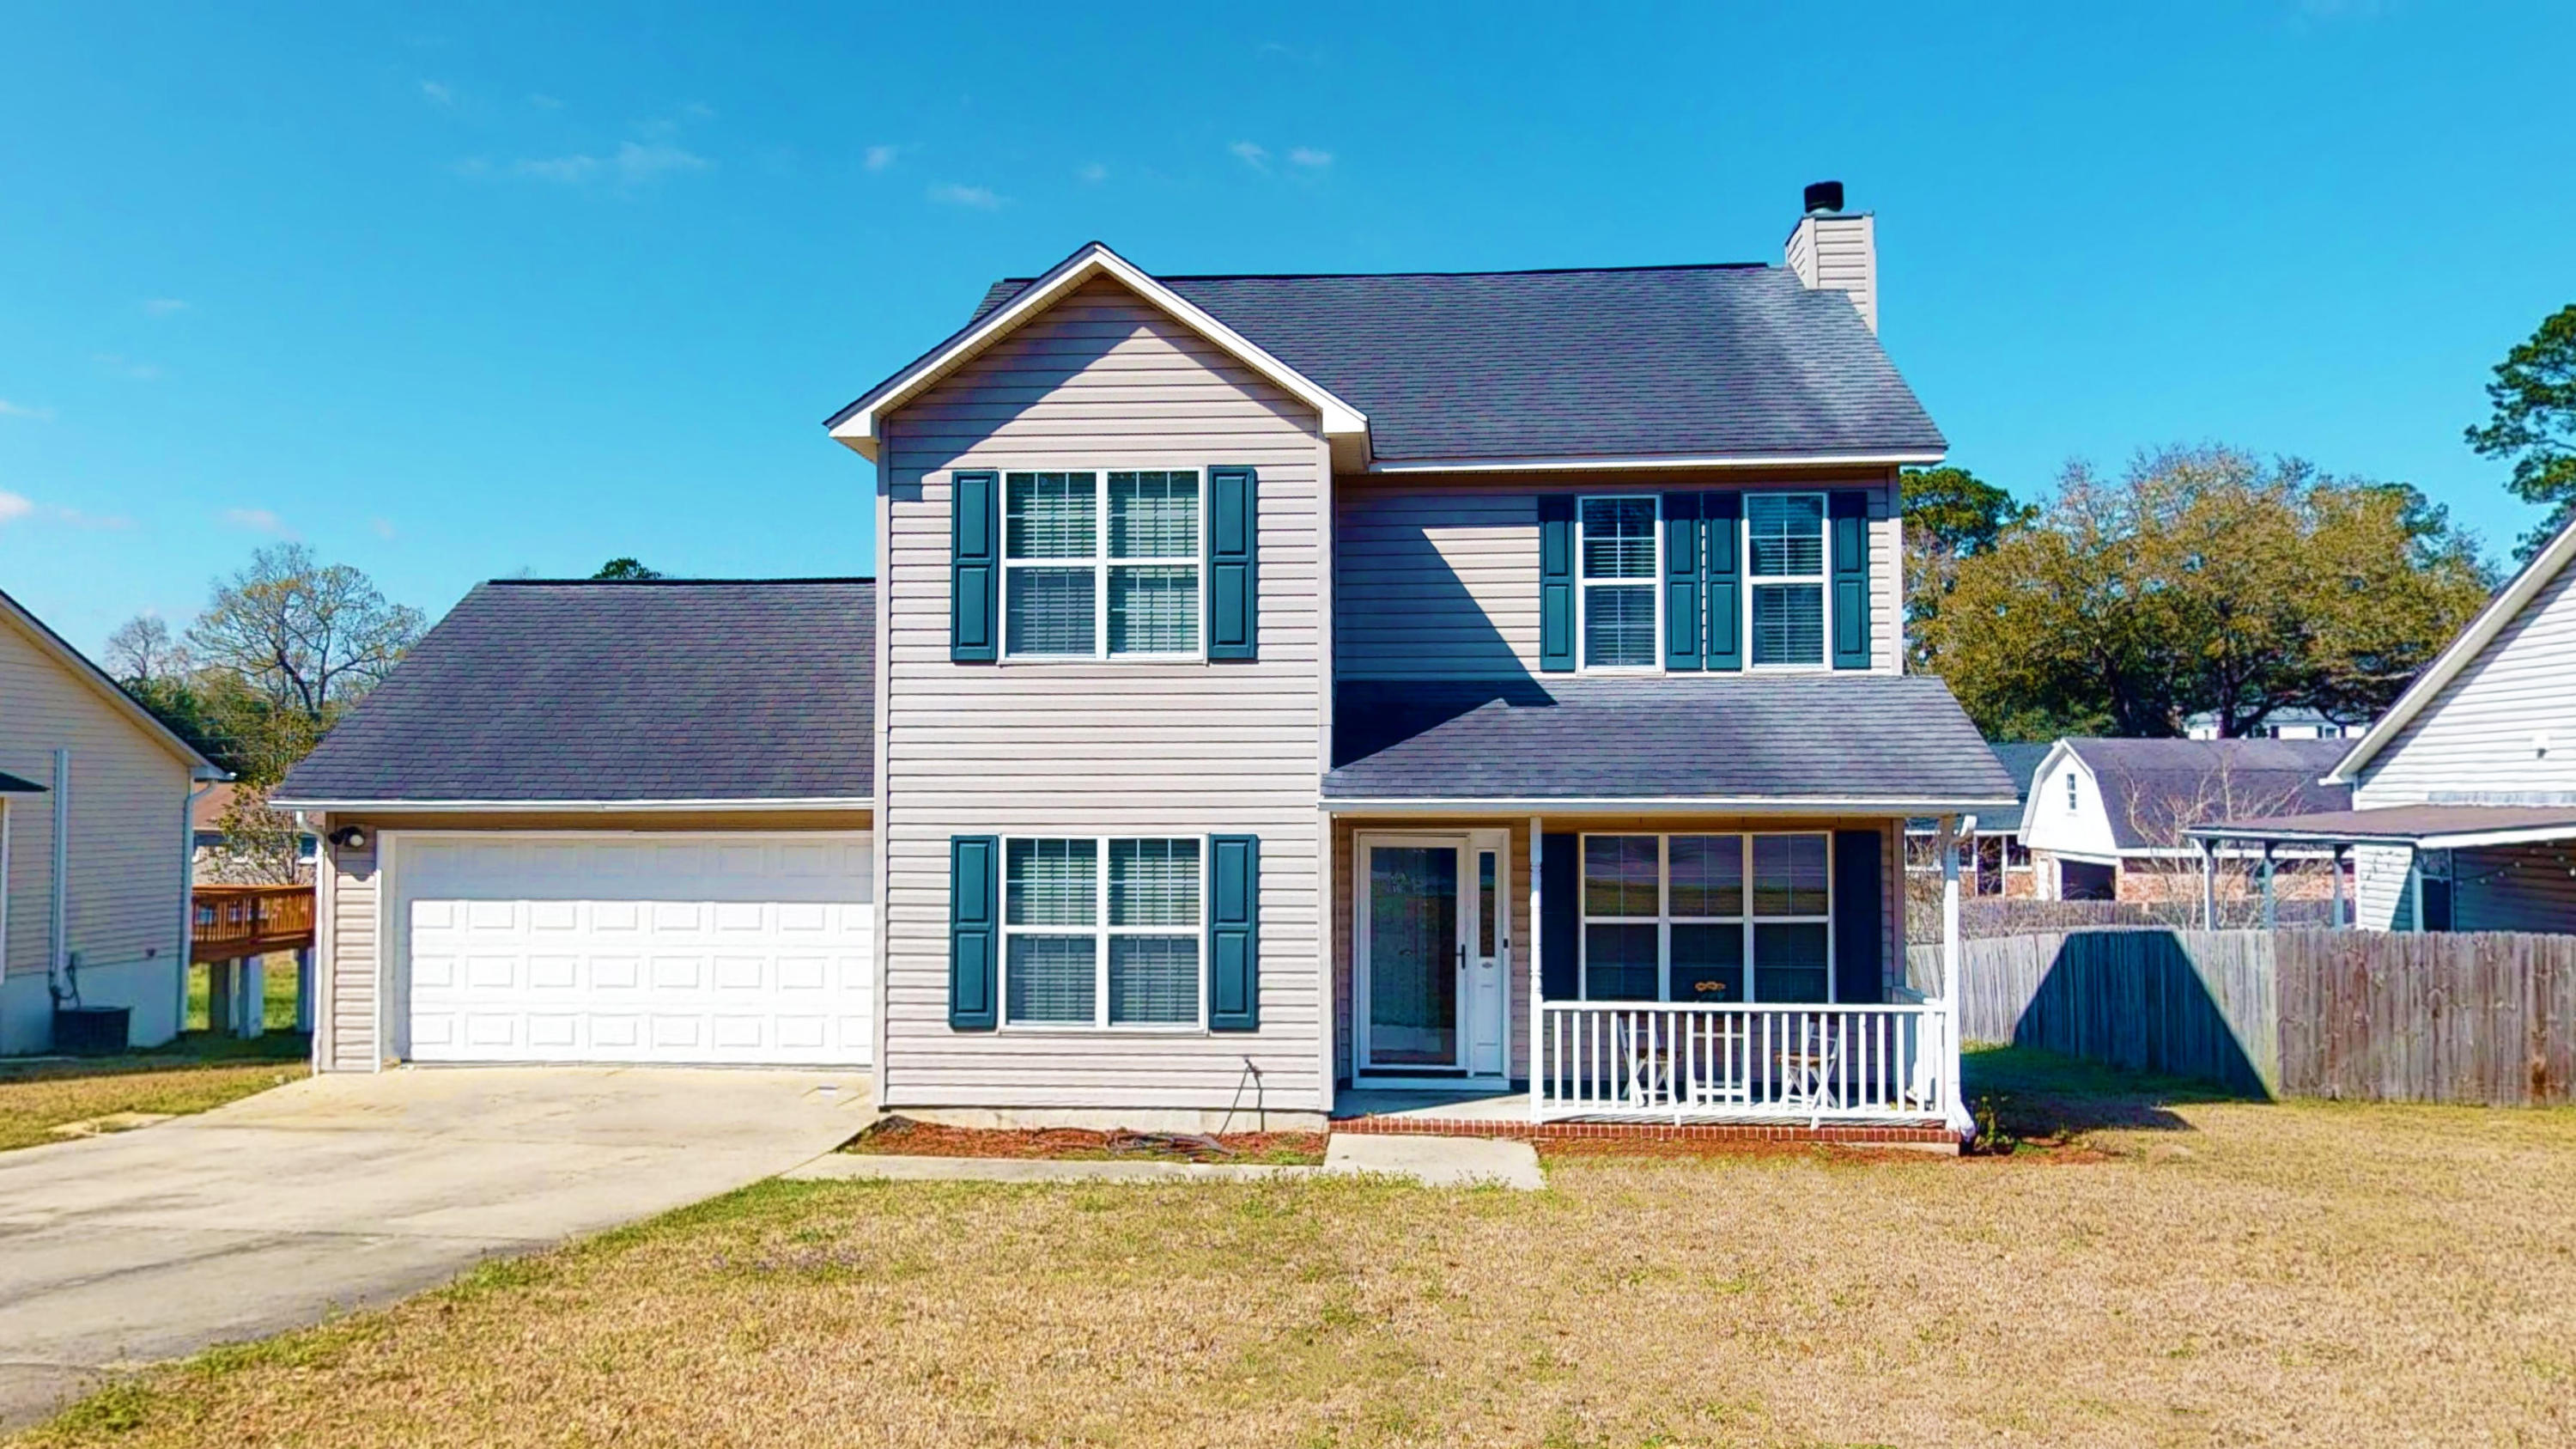 Camelot Village Homes For Sale - 113 Round Table, Goose Creek, SC - 28